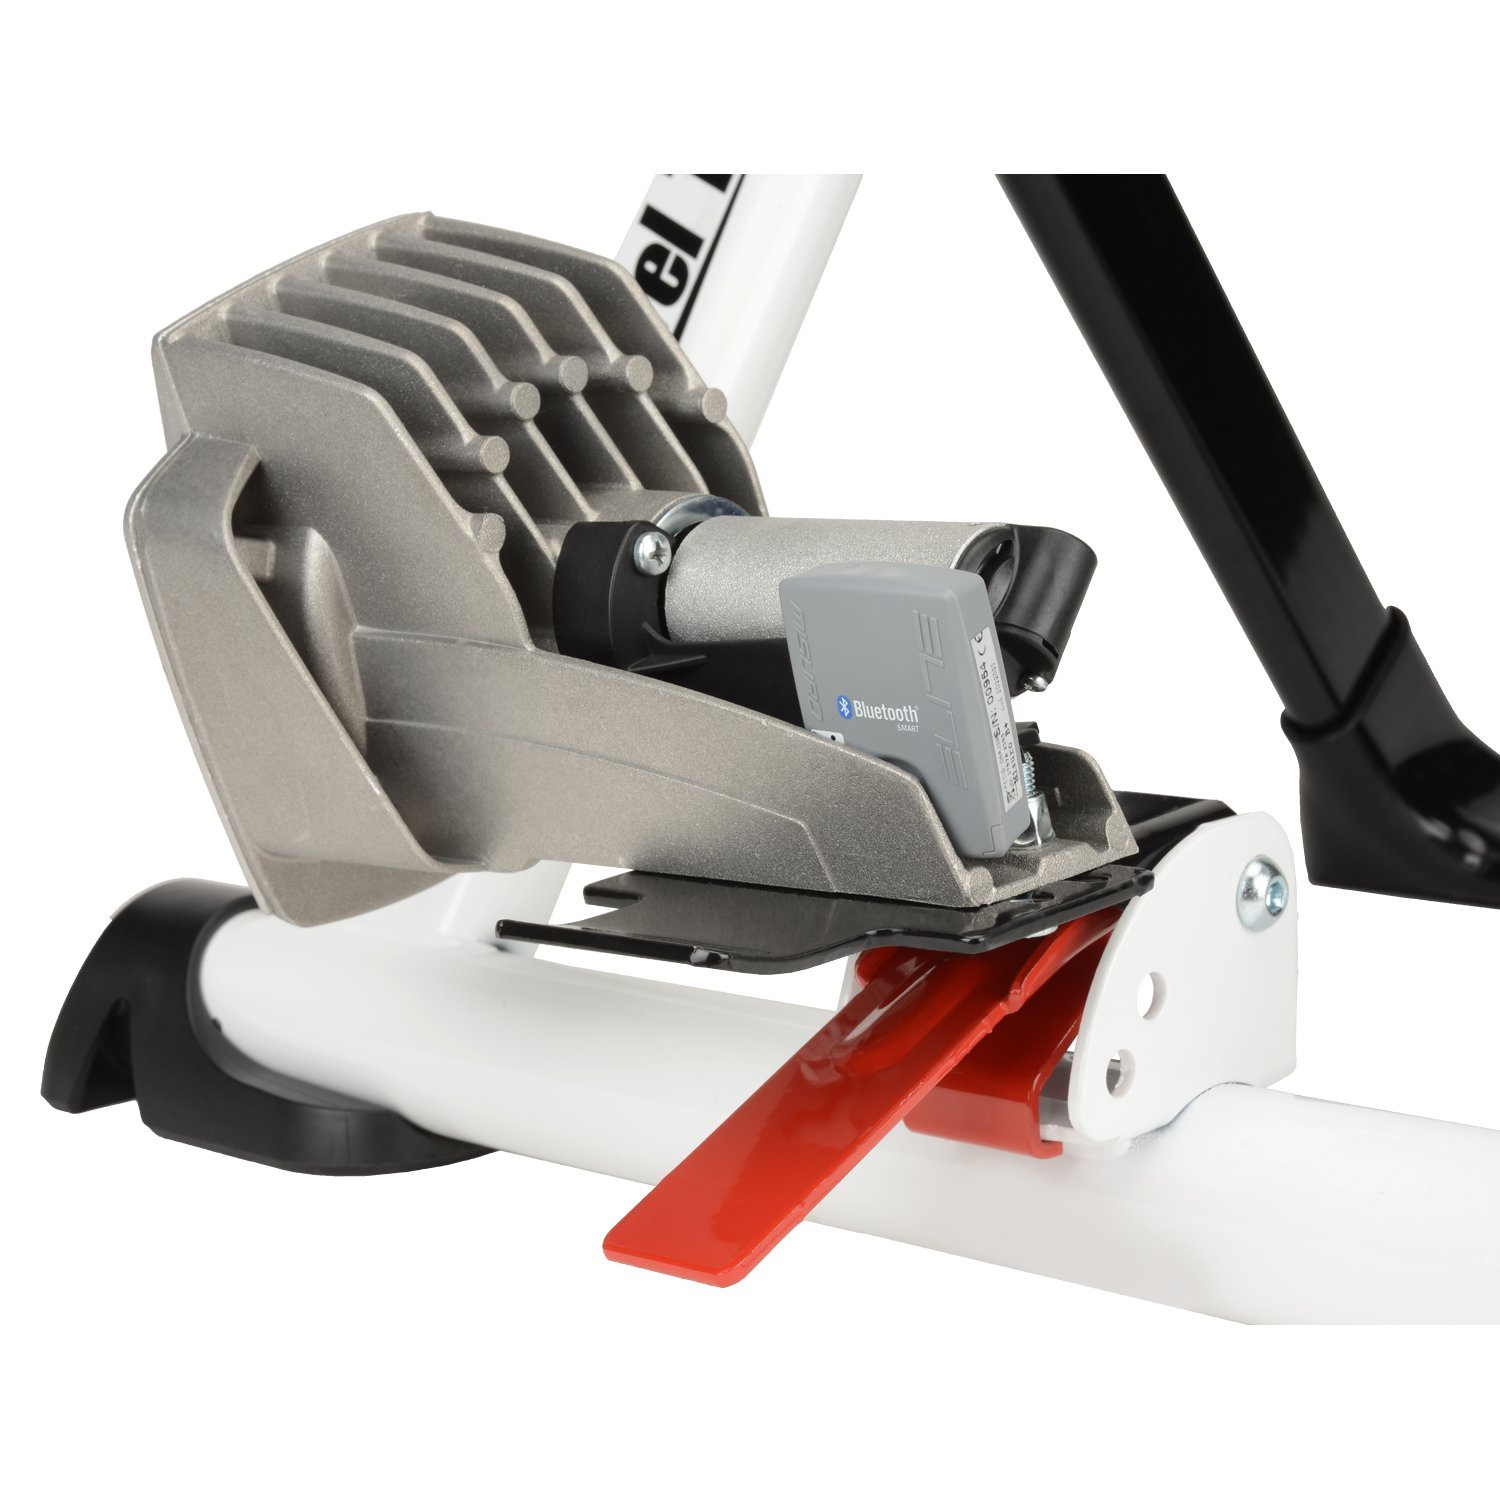 Travel Trac Fluid Smart Trainer by Travel Trac (Image #5)